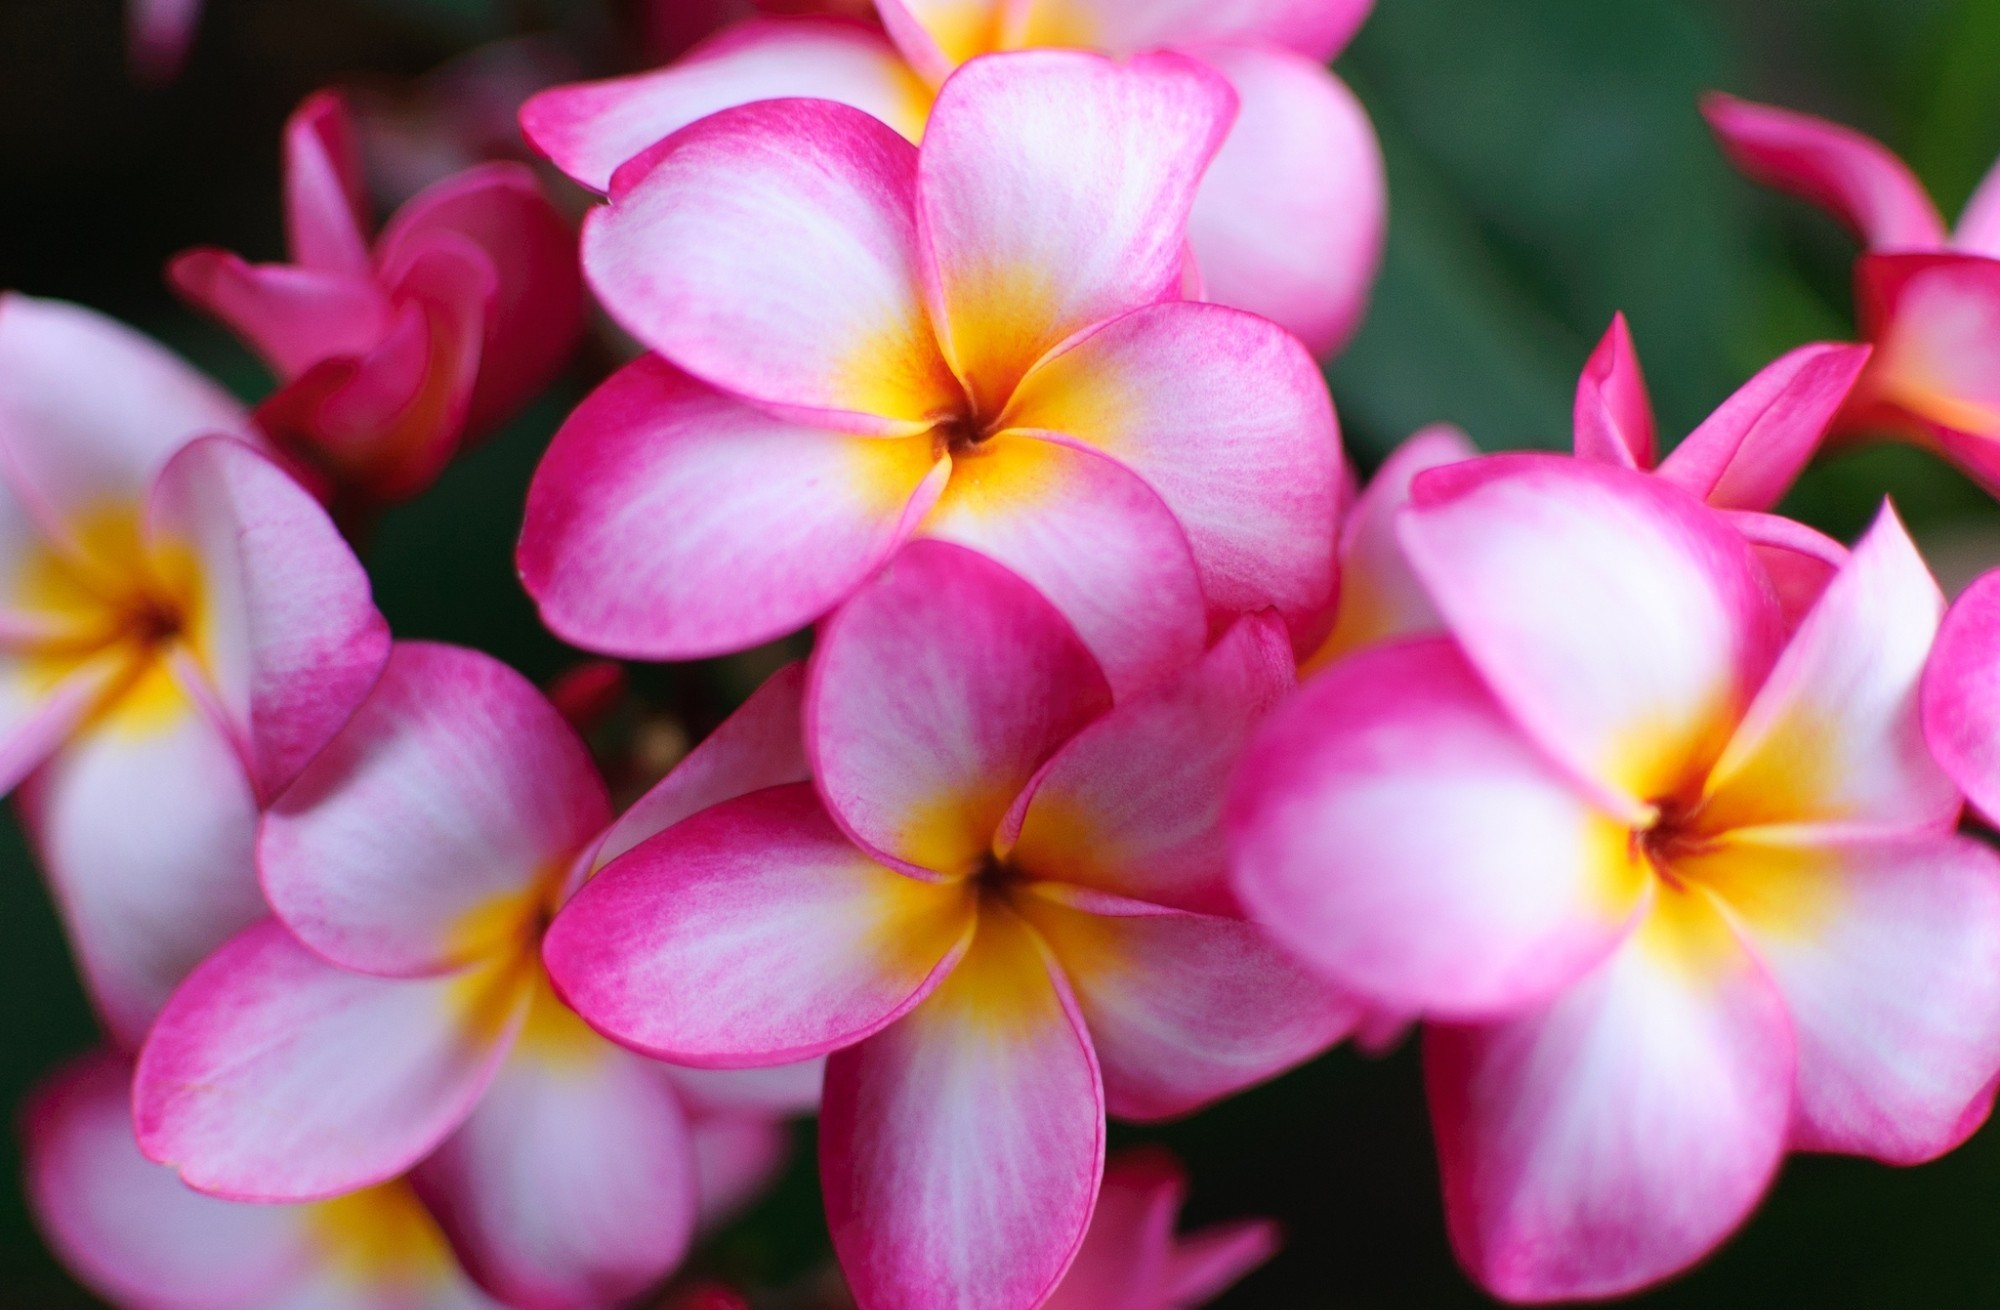 Plumeria wallpapers 32359 2000x1310 px plumeria wallpapers 32359 izmirmasajfo